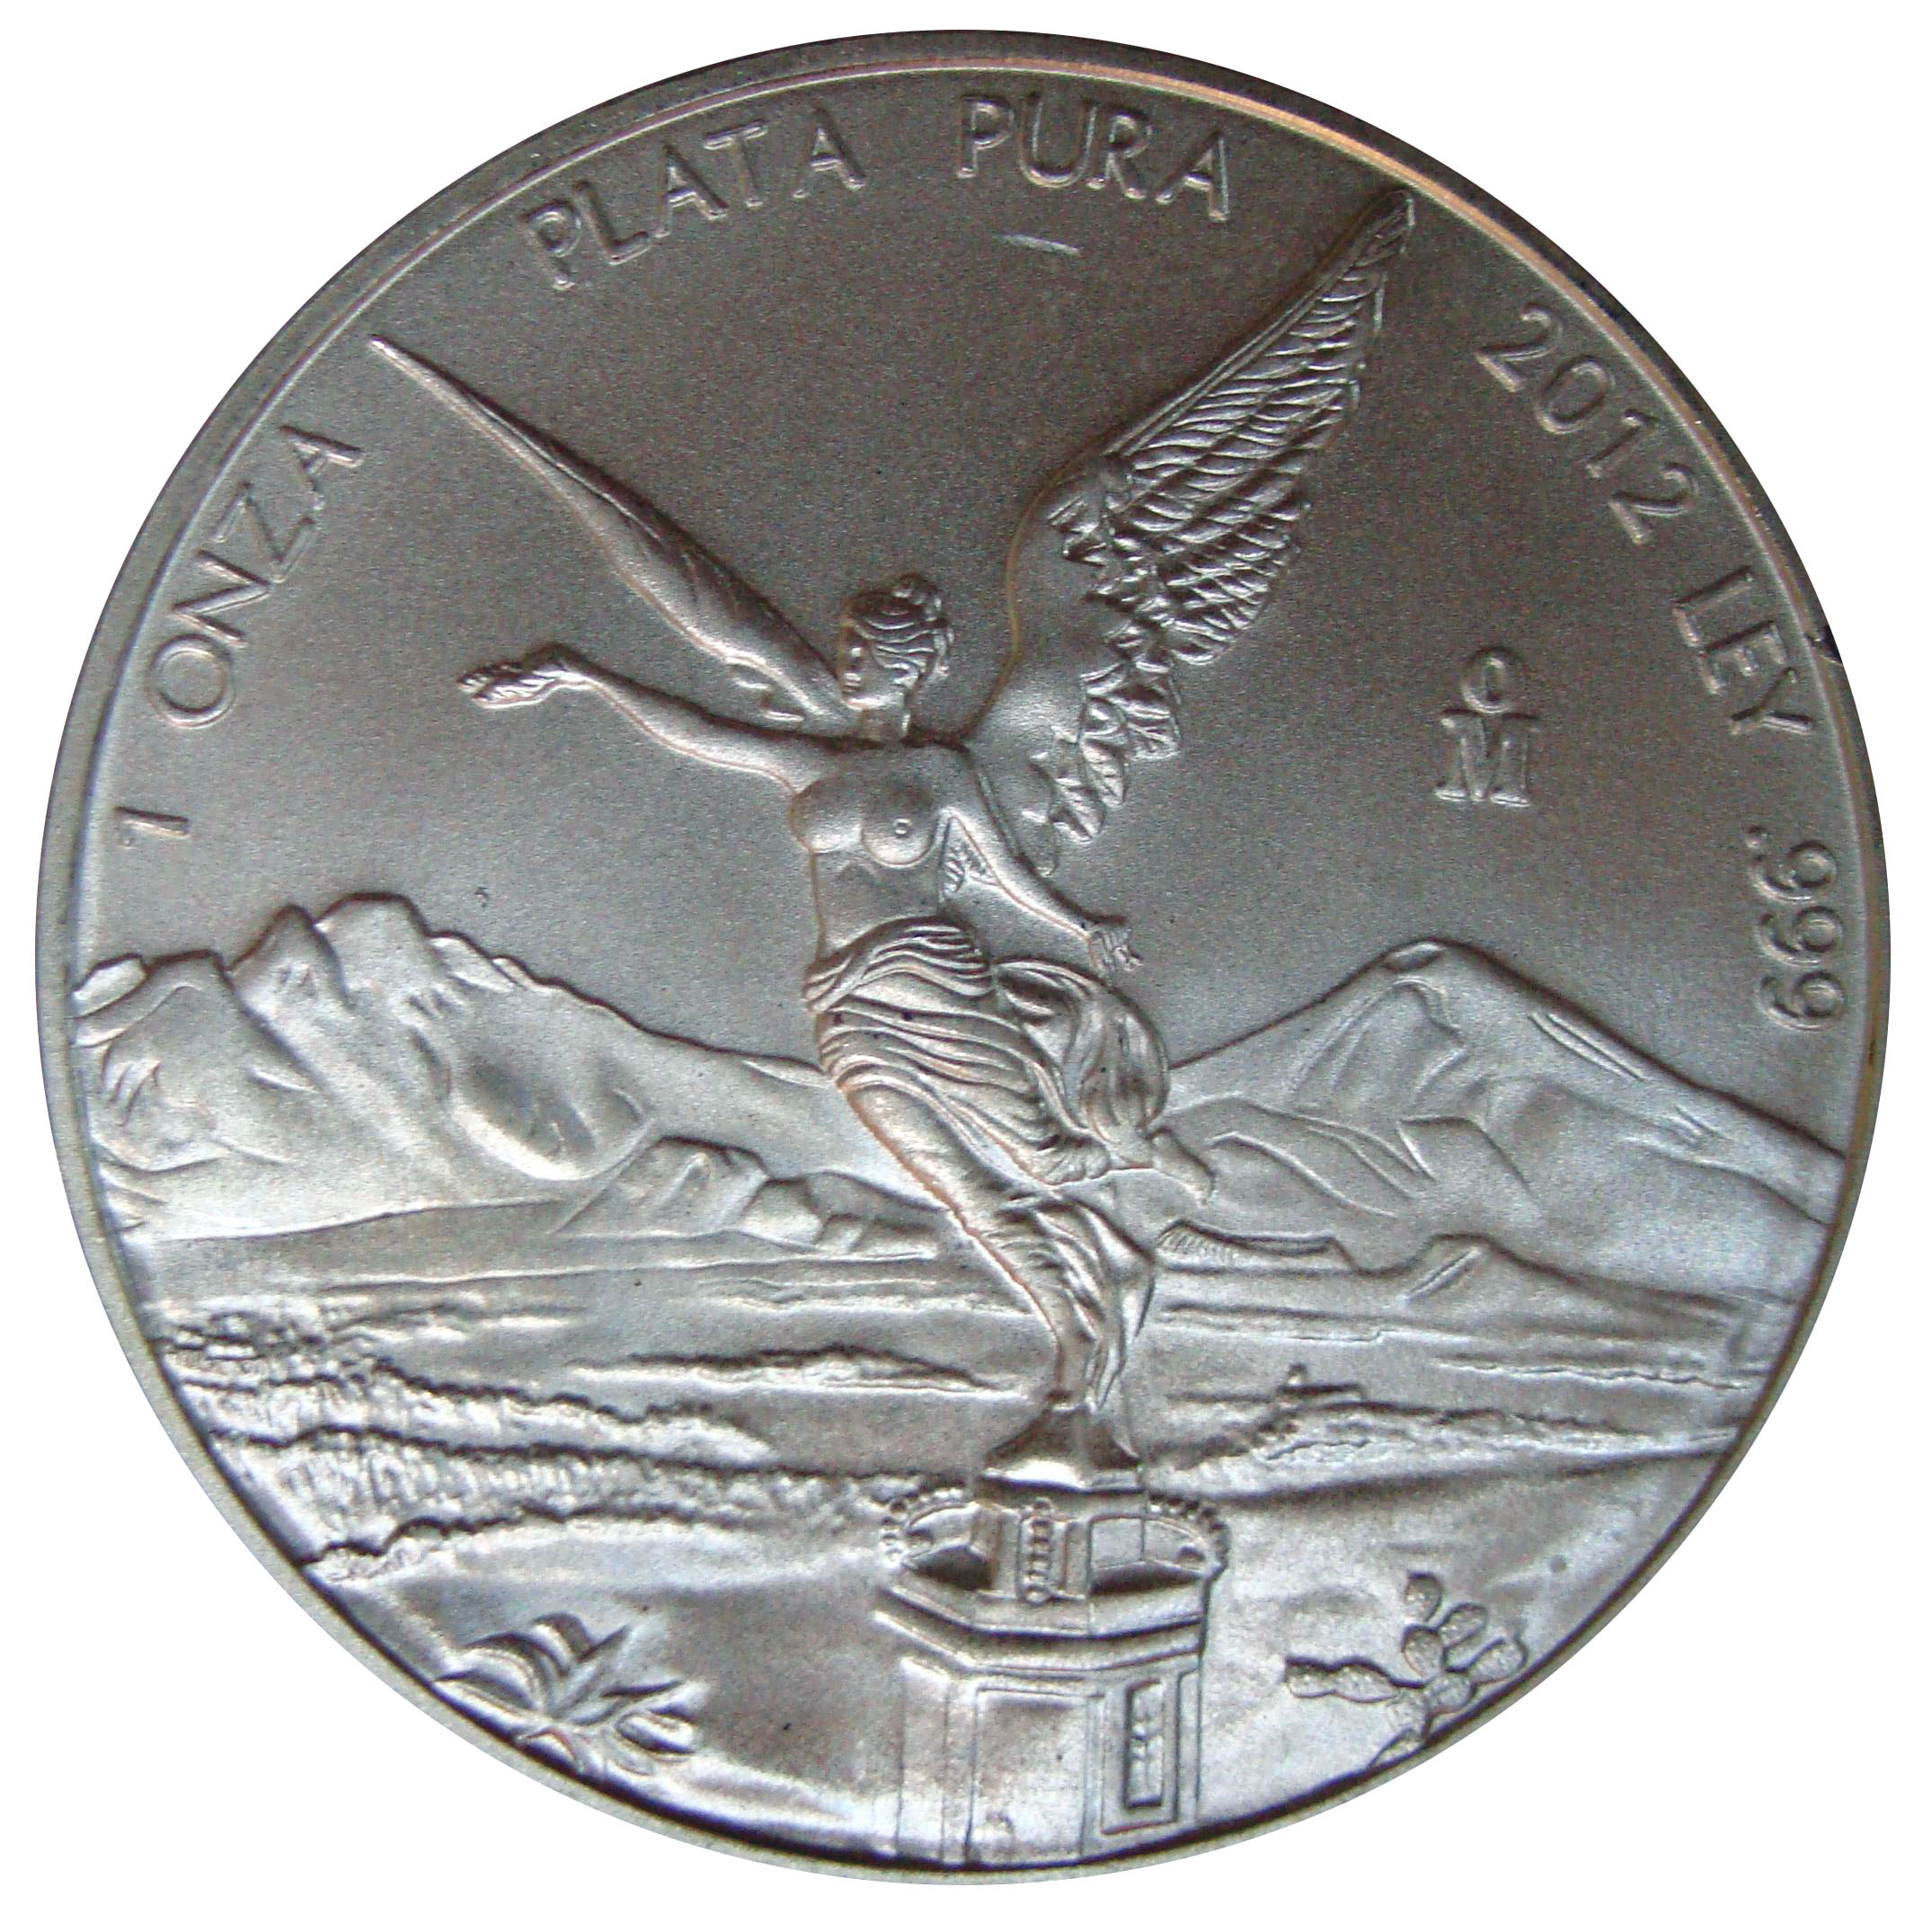 Silver Bullion Value Based on Current Silver Price